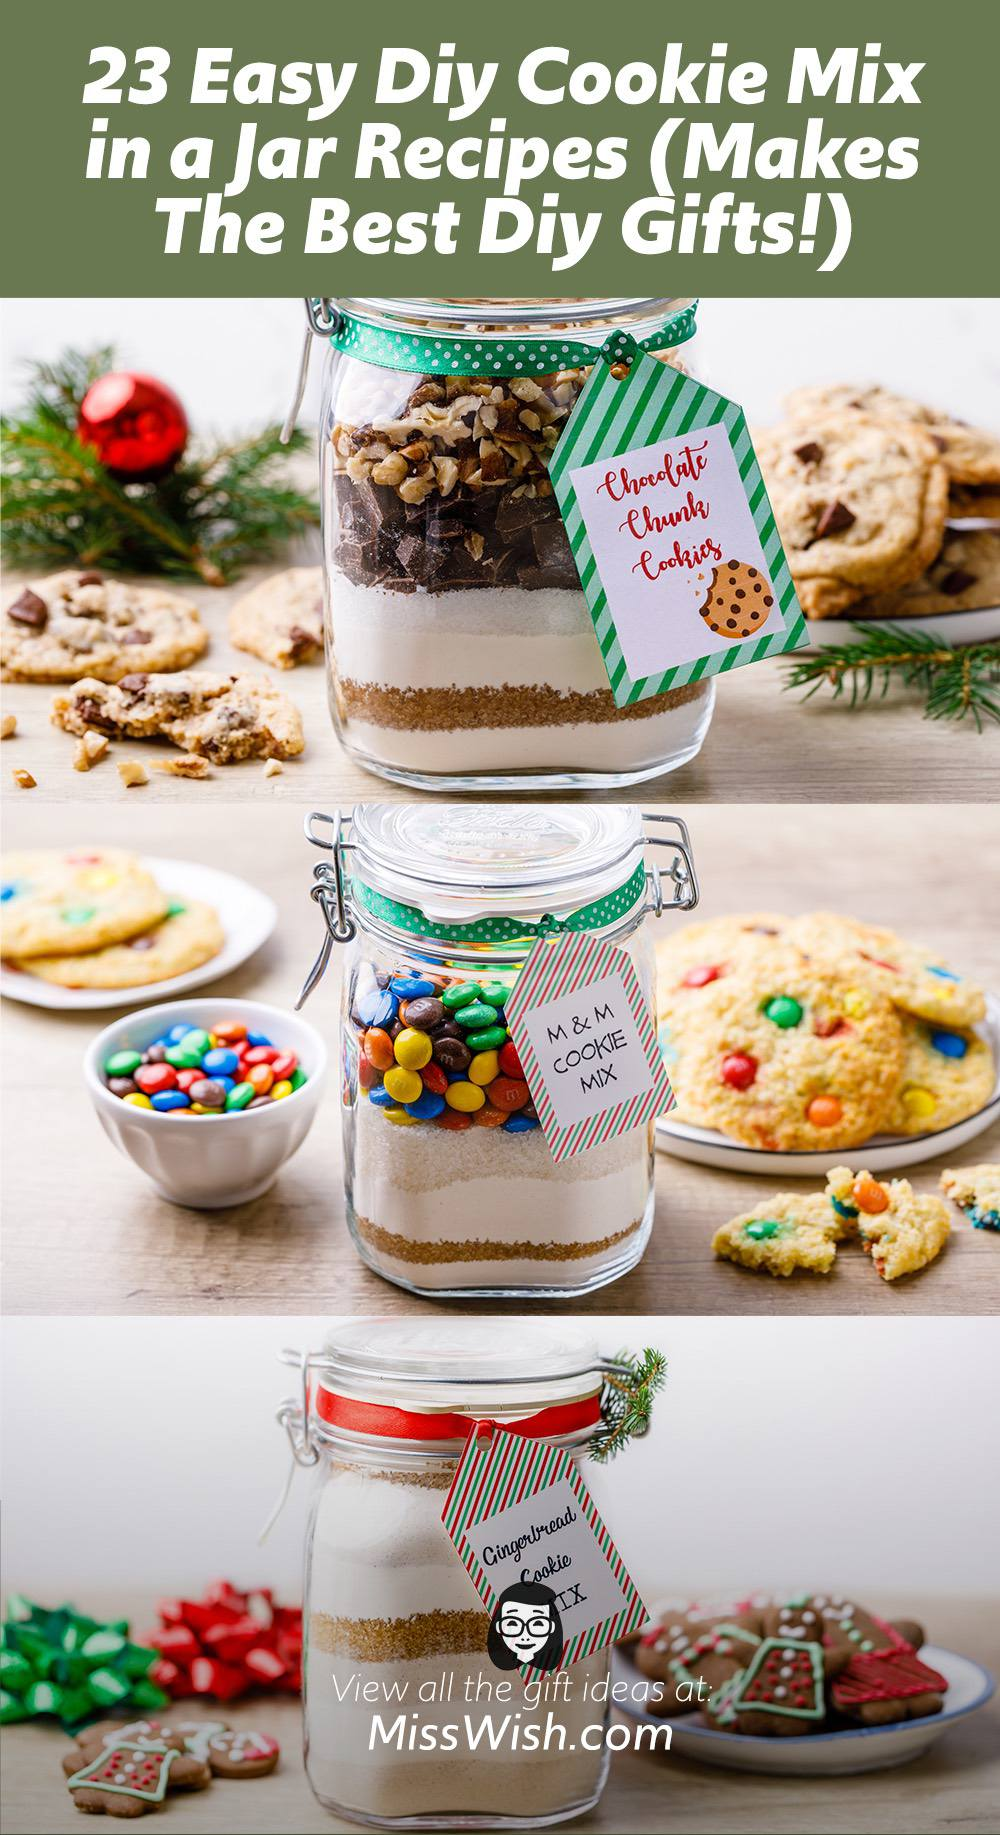 23 Easy Diy Cookie Mix in a Jar Recipes